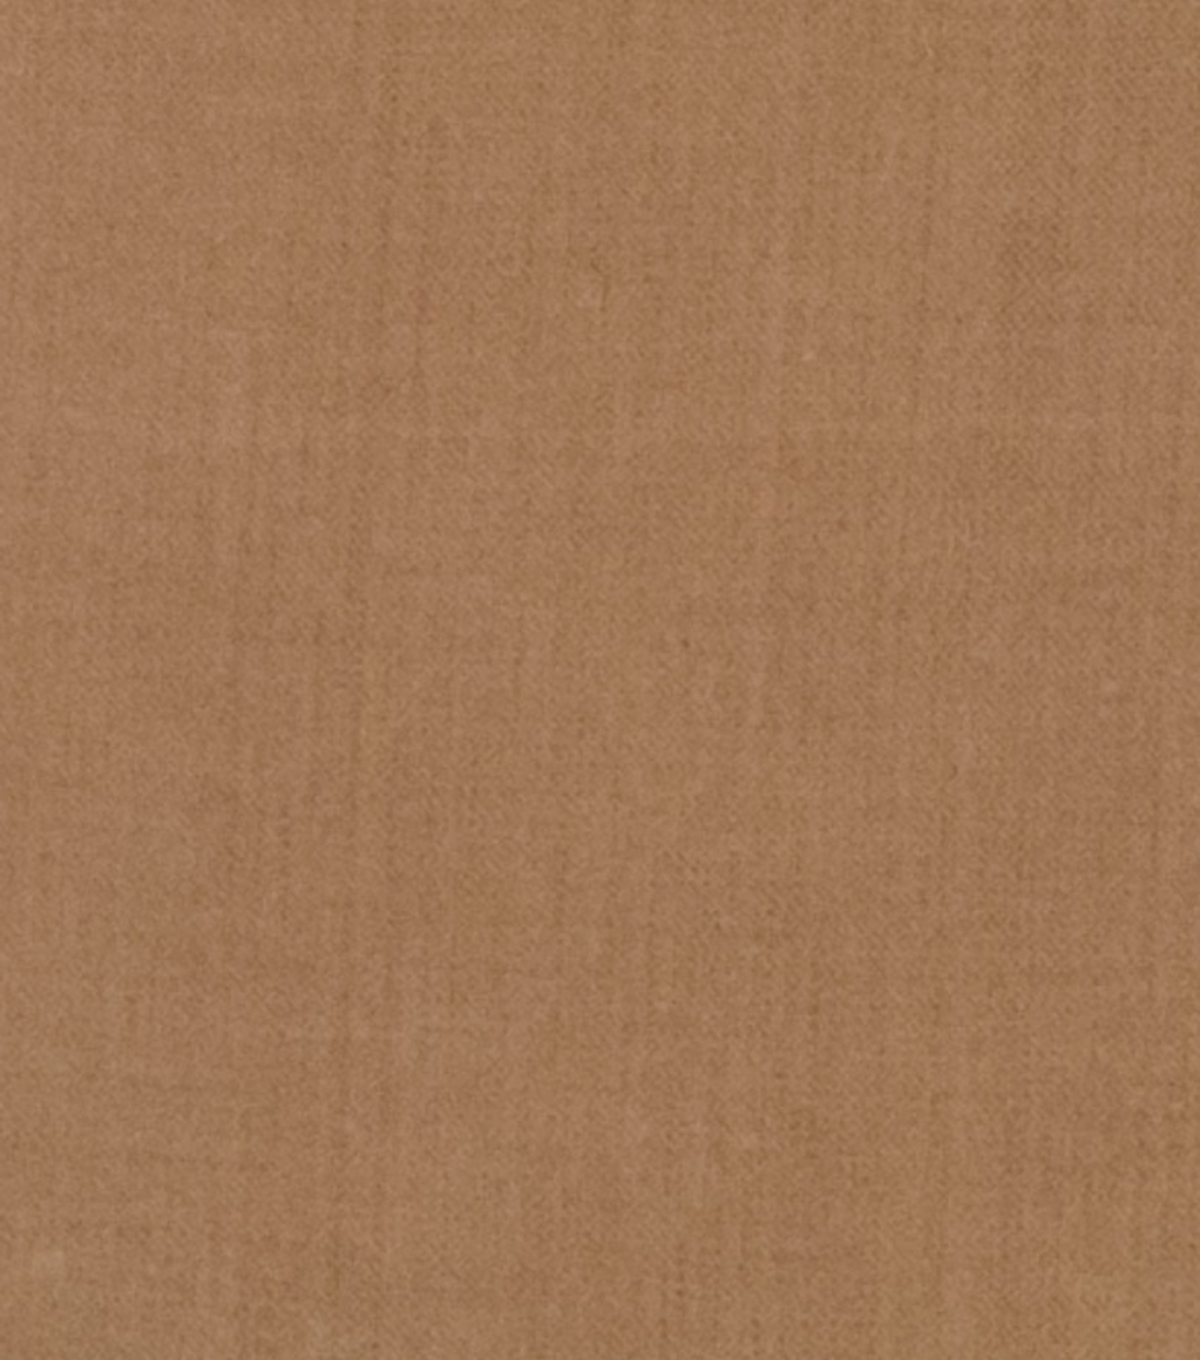 Home Decor 8\u0022x8\u0022 Fabric Swatch-Signature Series Rockford Linen Maple